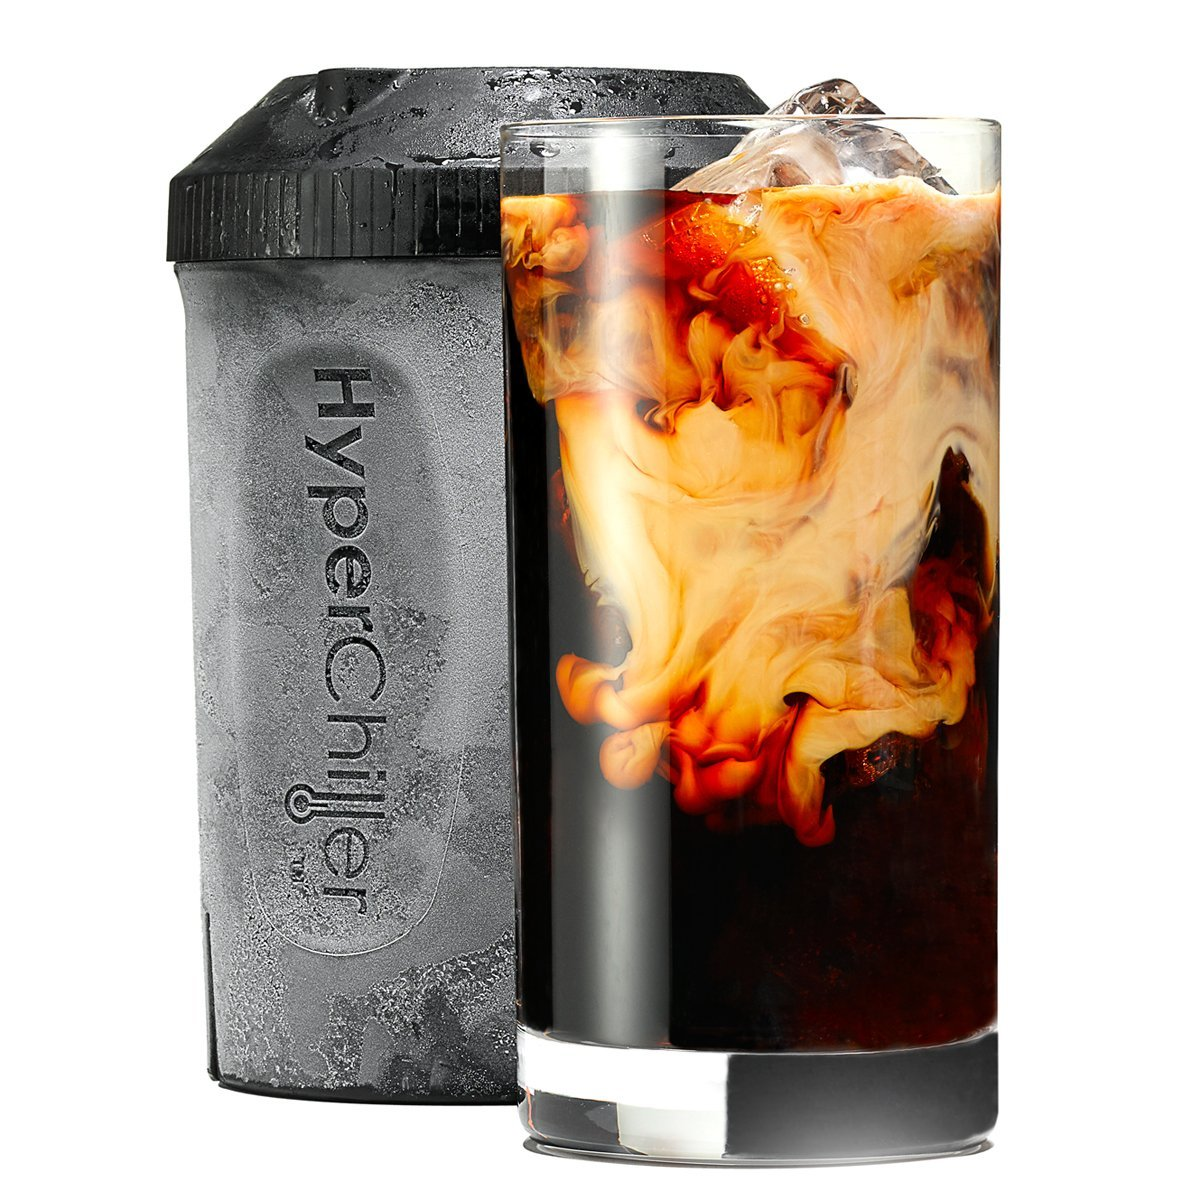 Your iced coffee drink can be made in minutes!